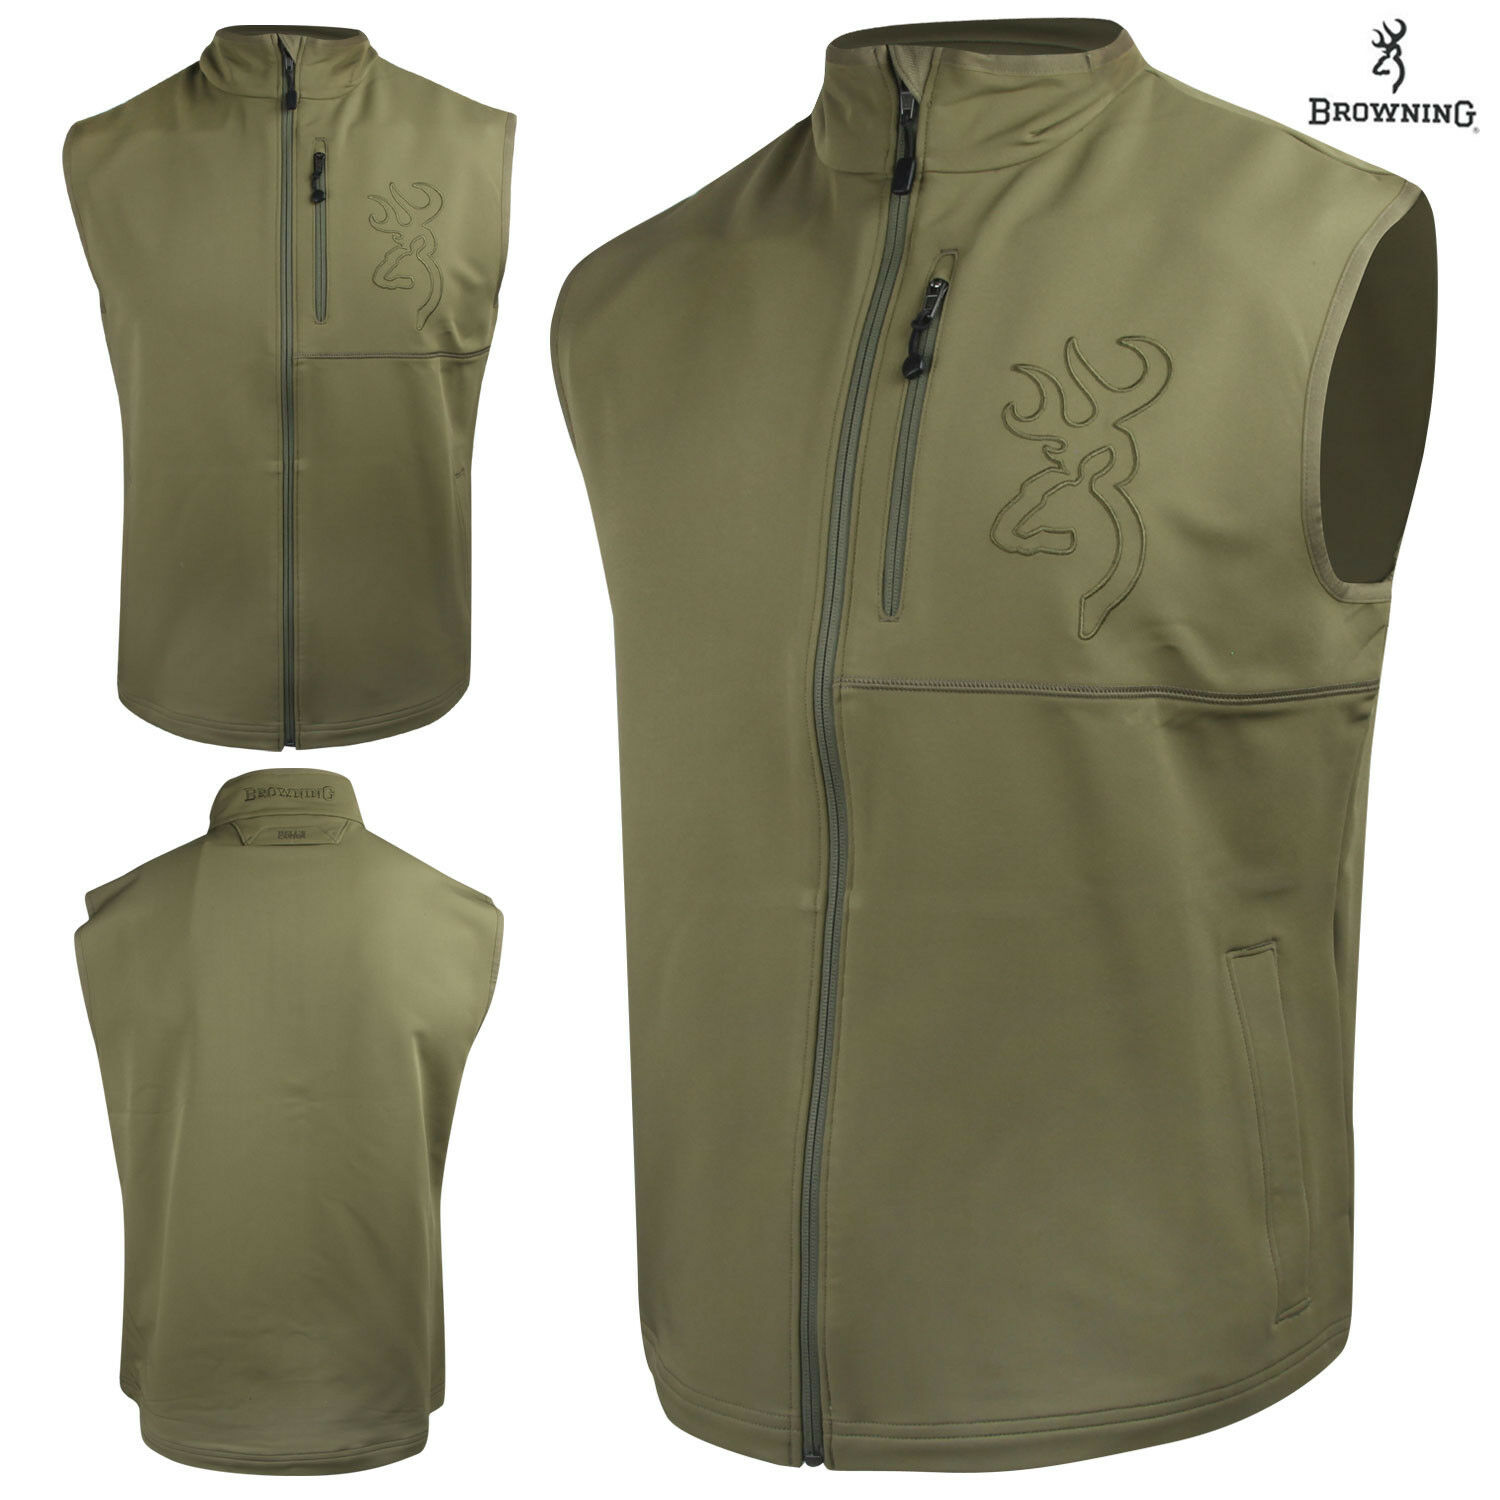 Browning  Hell's Canyon Mercury Vest (L)- Capers  large selection